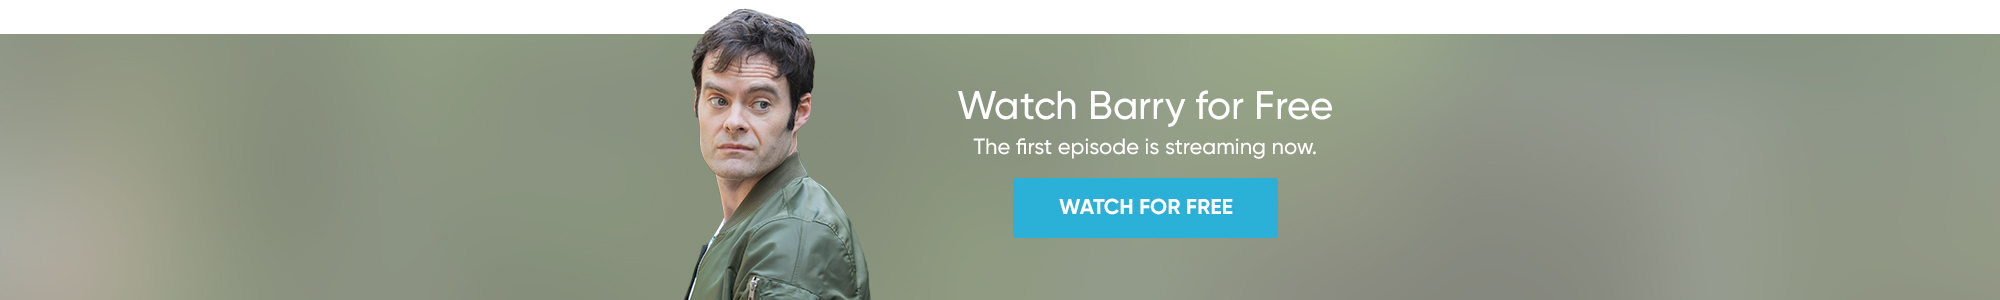 Watch Barry for Free